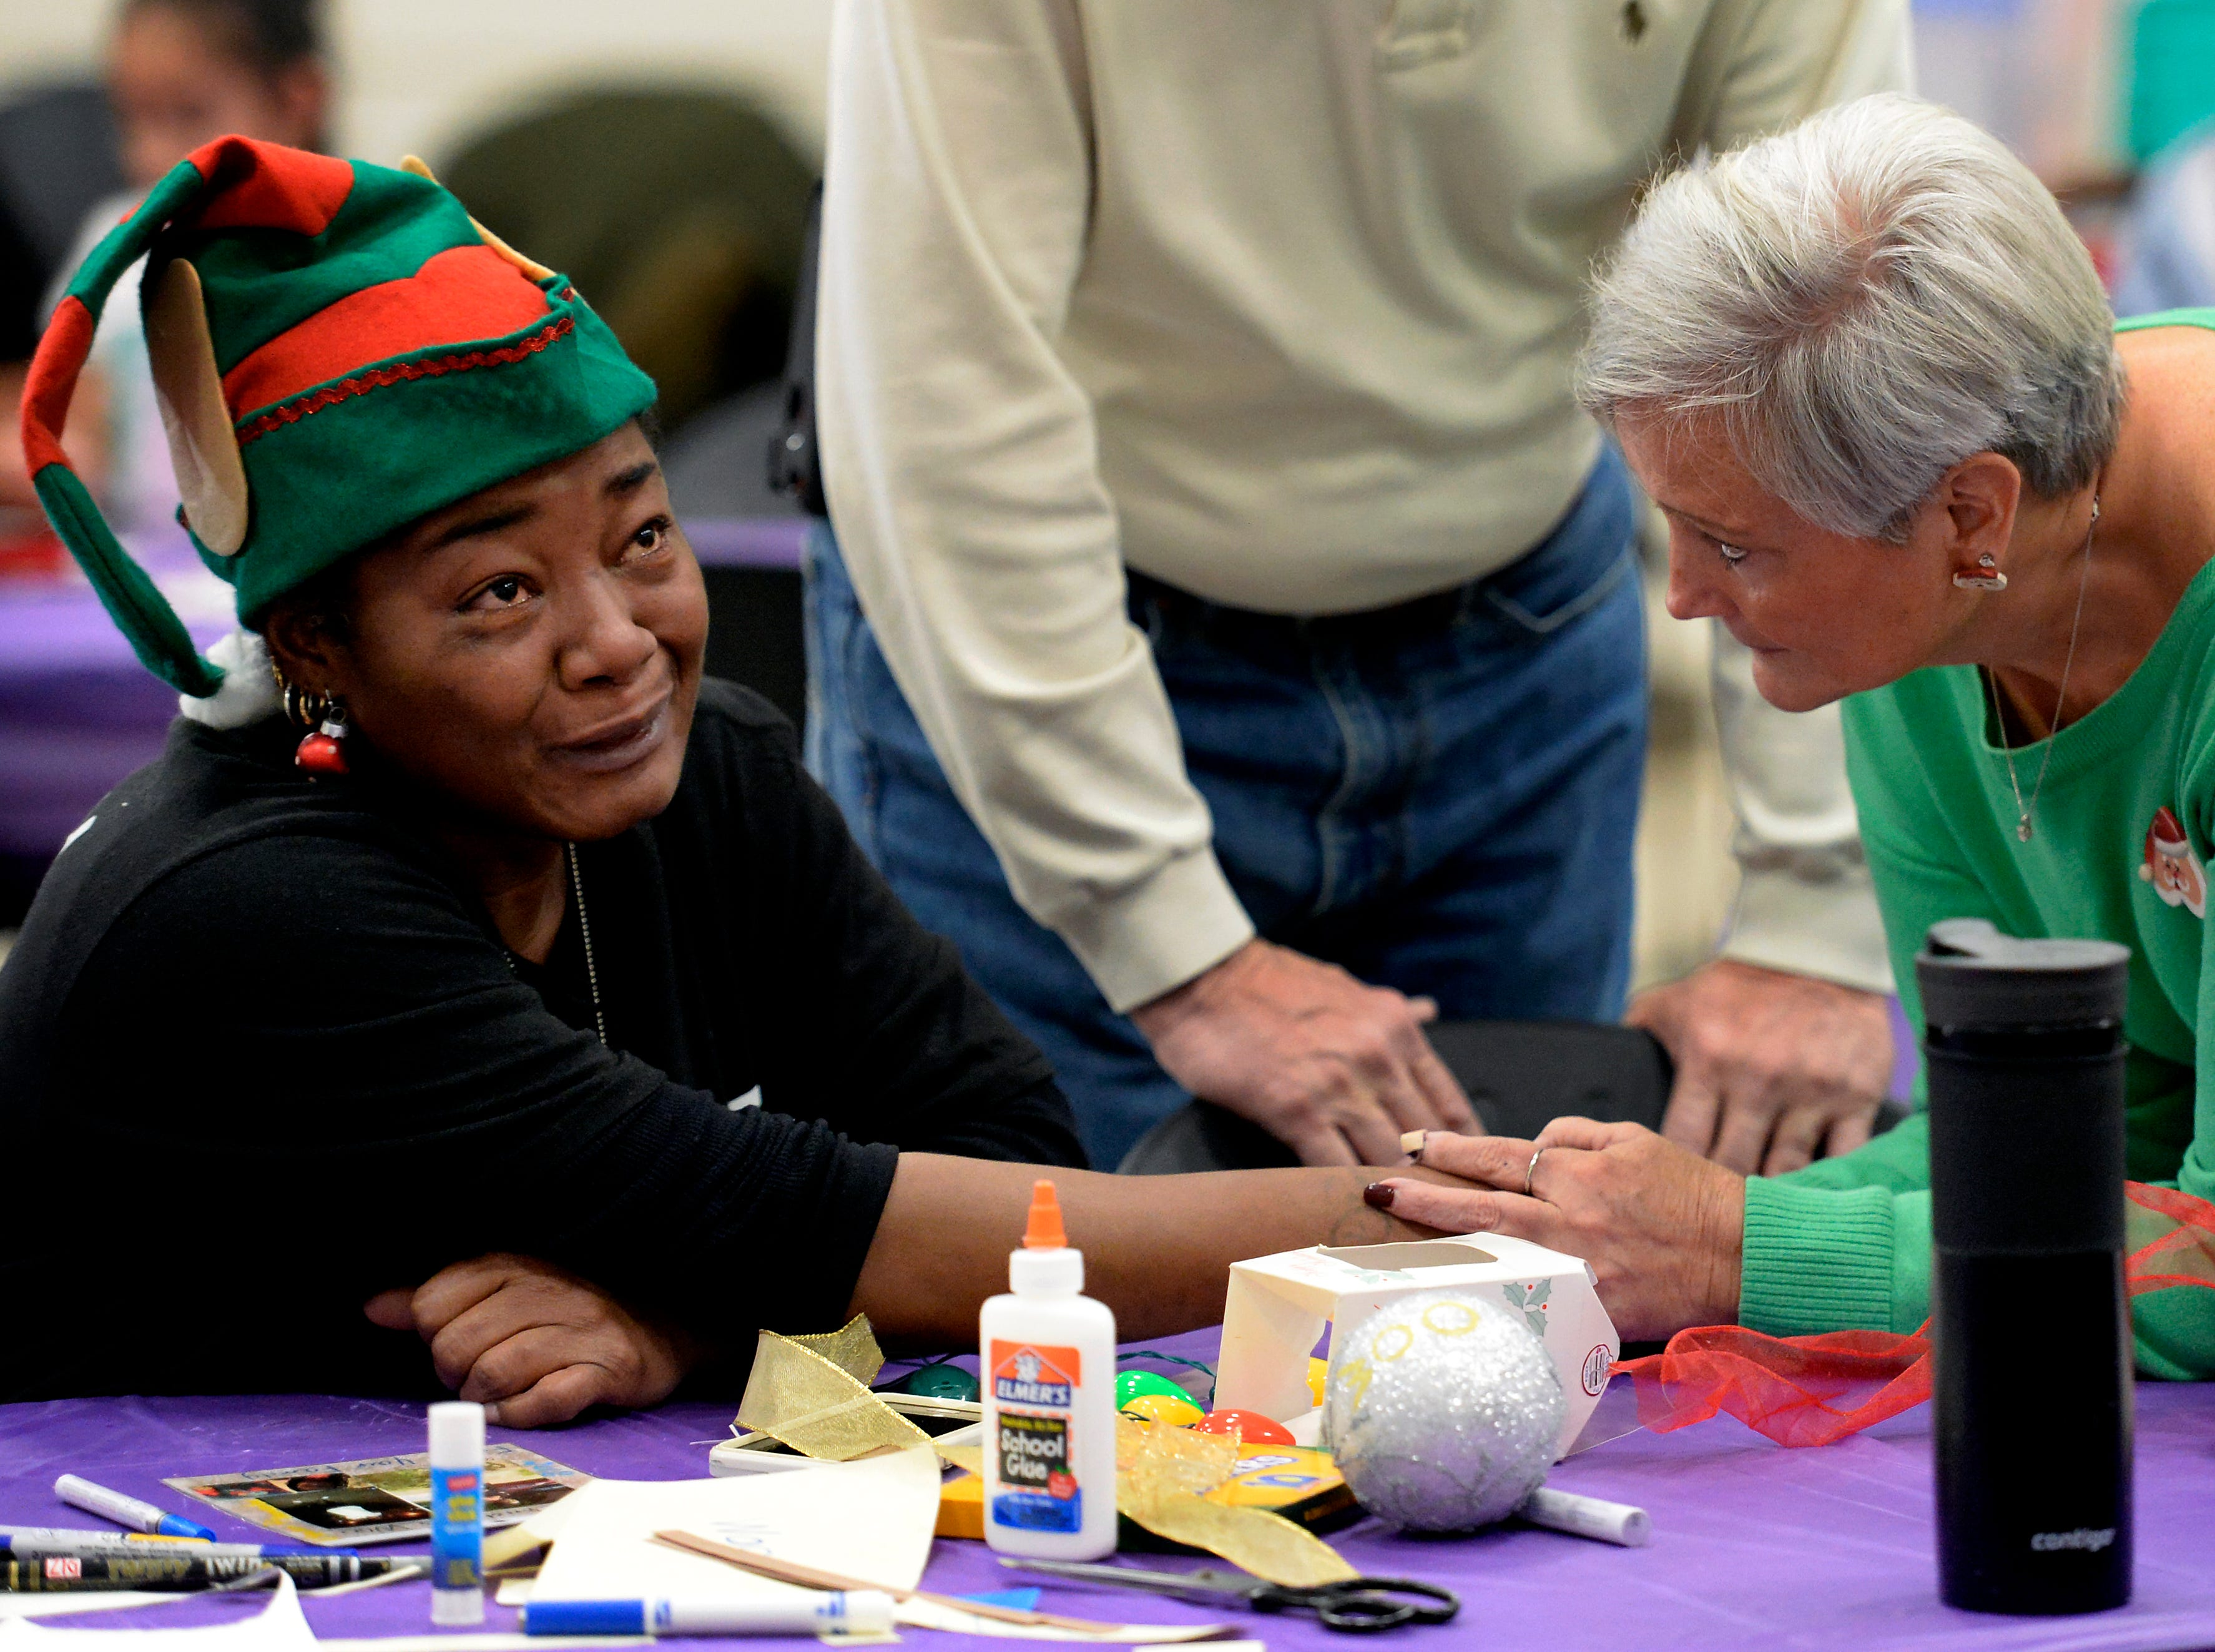 Cherrie Anglin is comforted by Judy Davis while making a Christmas ornament in memory of her son, Alando Harris II, at the Metro Police Department's North Precinct on Tuesday, Dec. 11, 2018, in Nashville, Tenn. The Victim Intervention Program is a community outreach program through the police department.